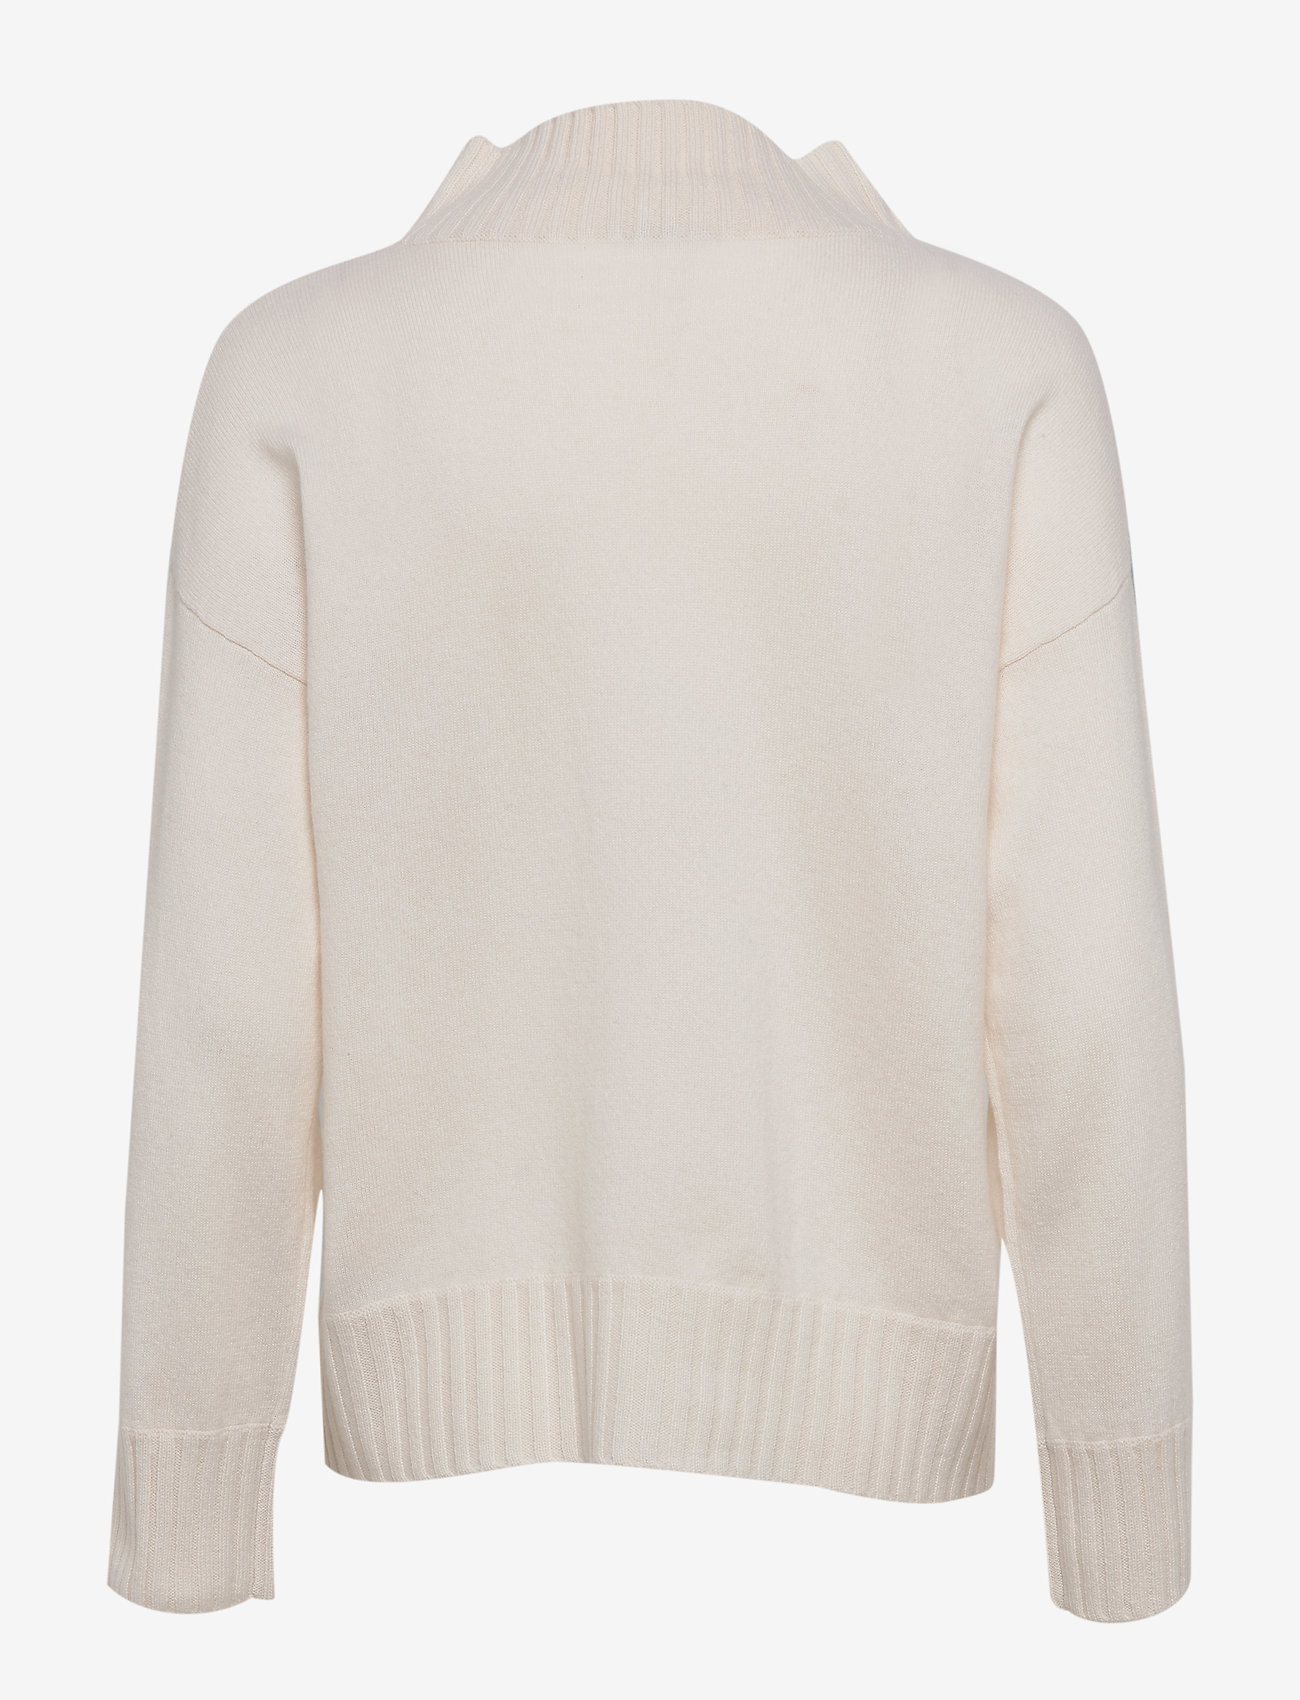 Davida Cashmere - High Neck Sweater - kashmir - white